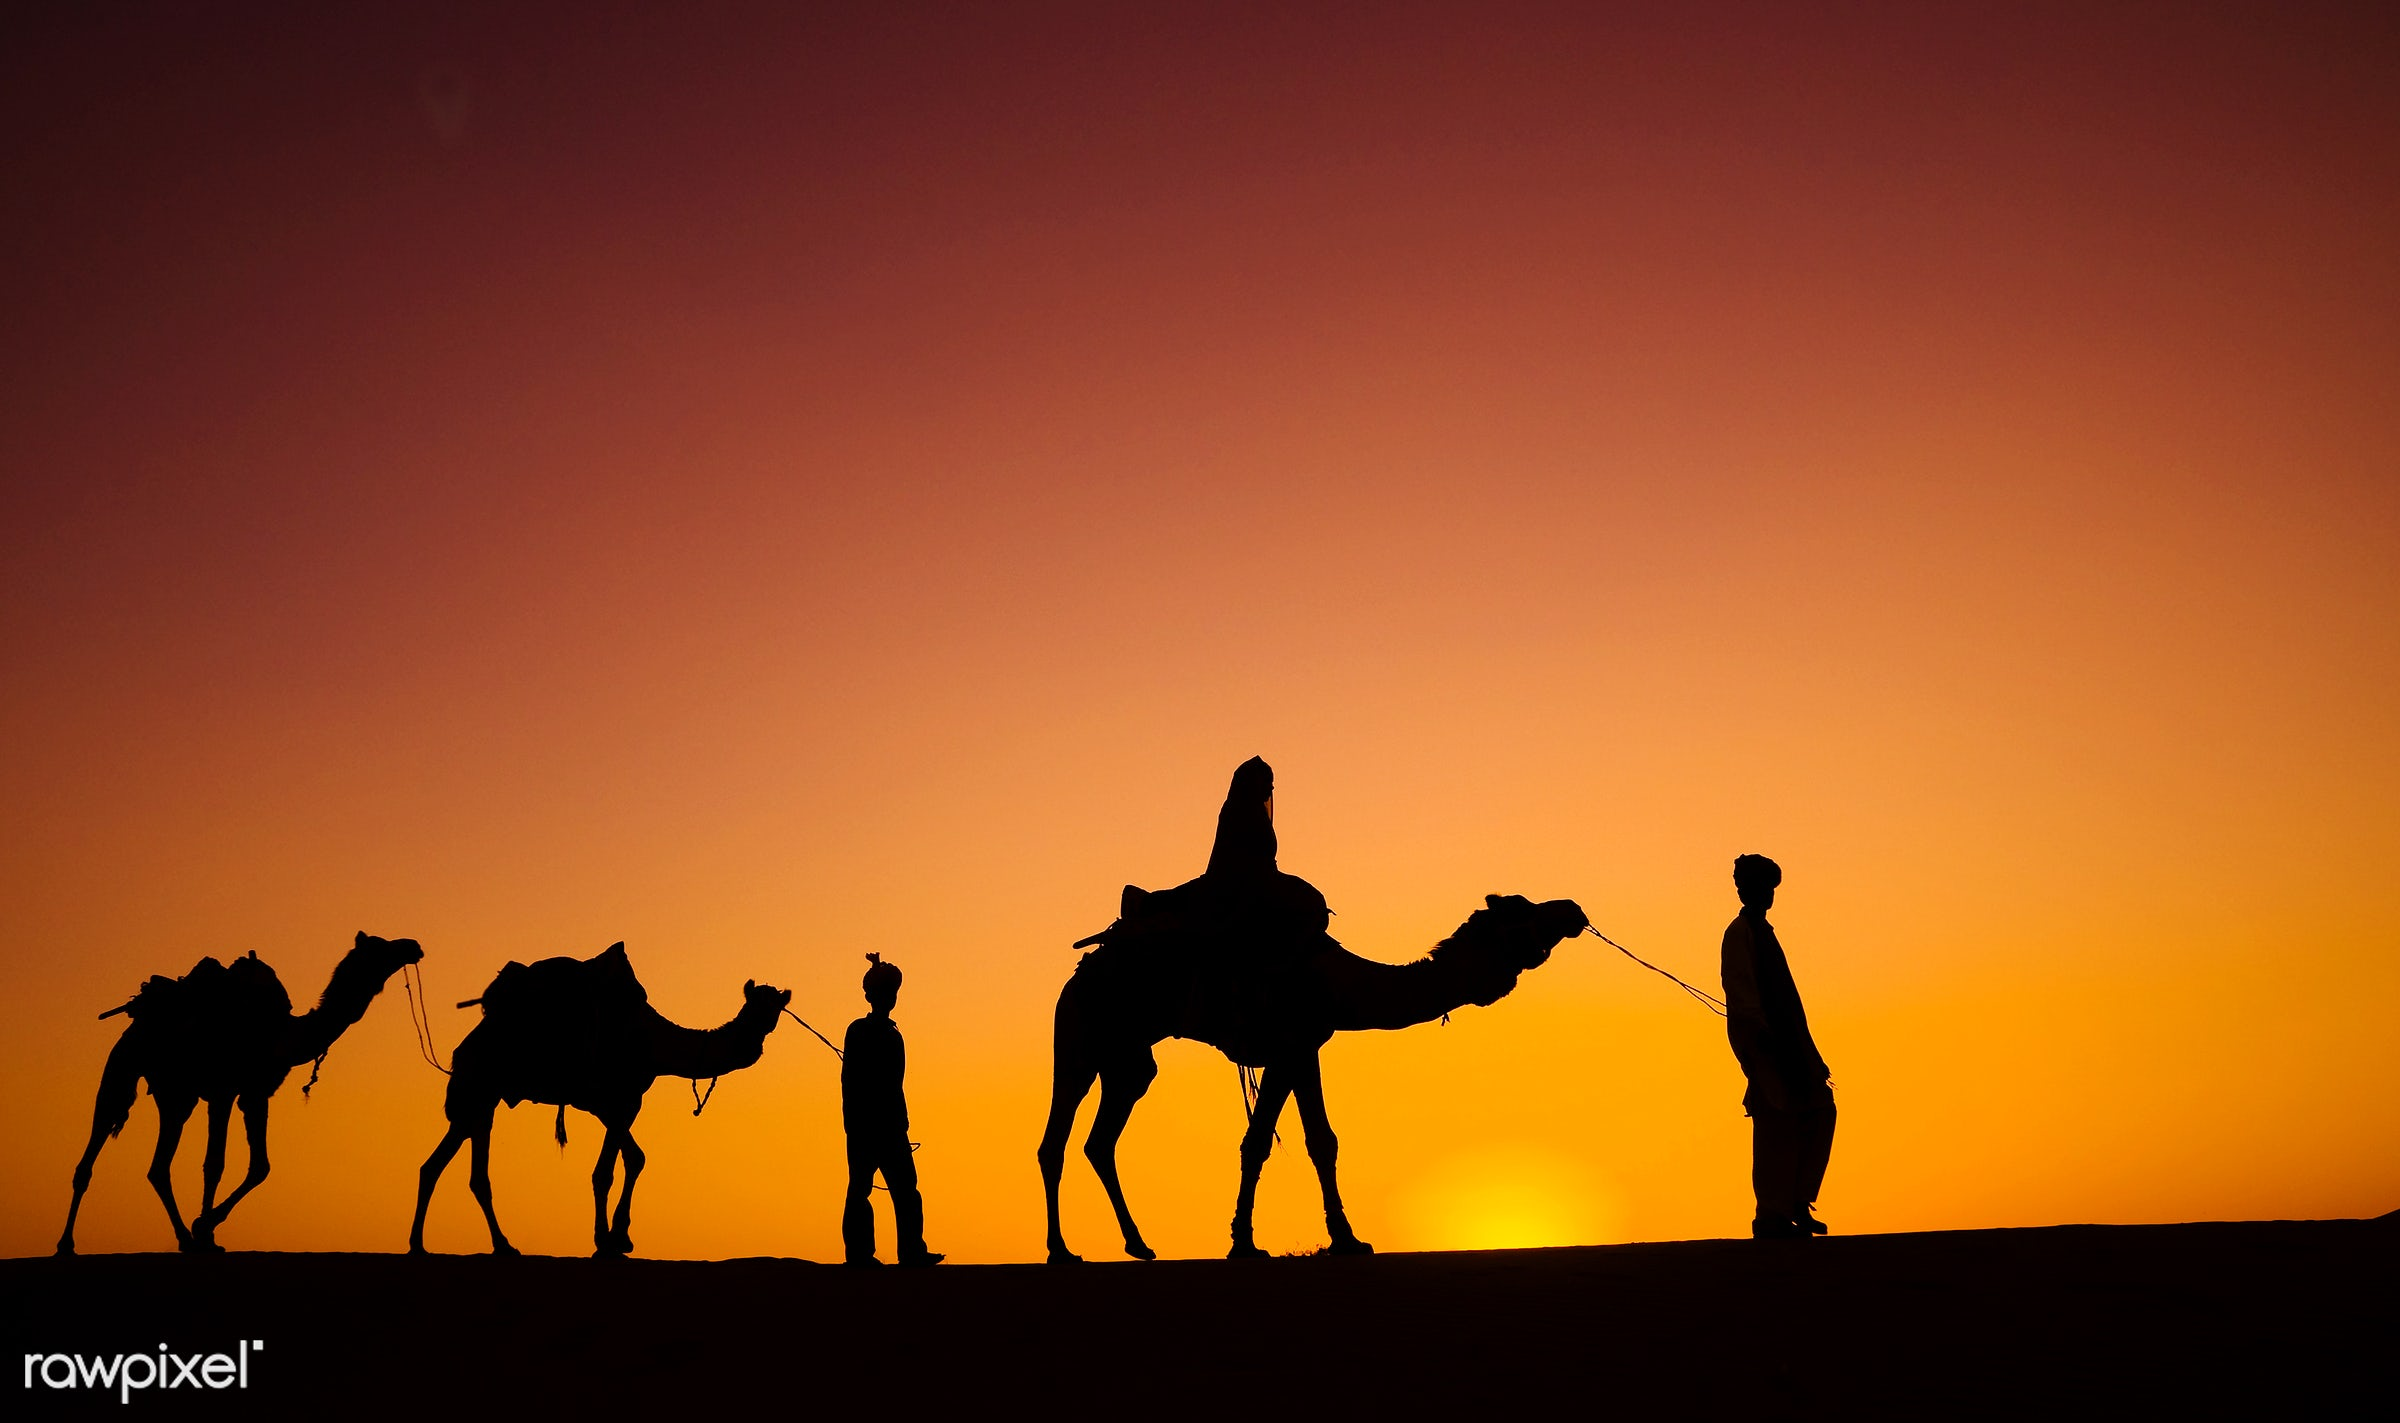 Indian men walking through the desert with their camels - camel, desert, animal themes, asia, culture, dusk, exoticism, heat...